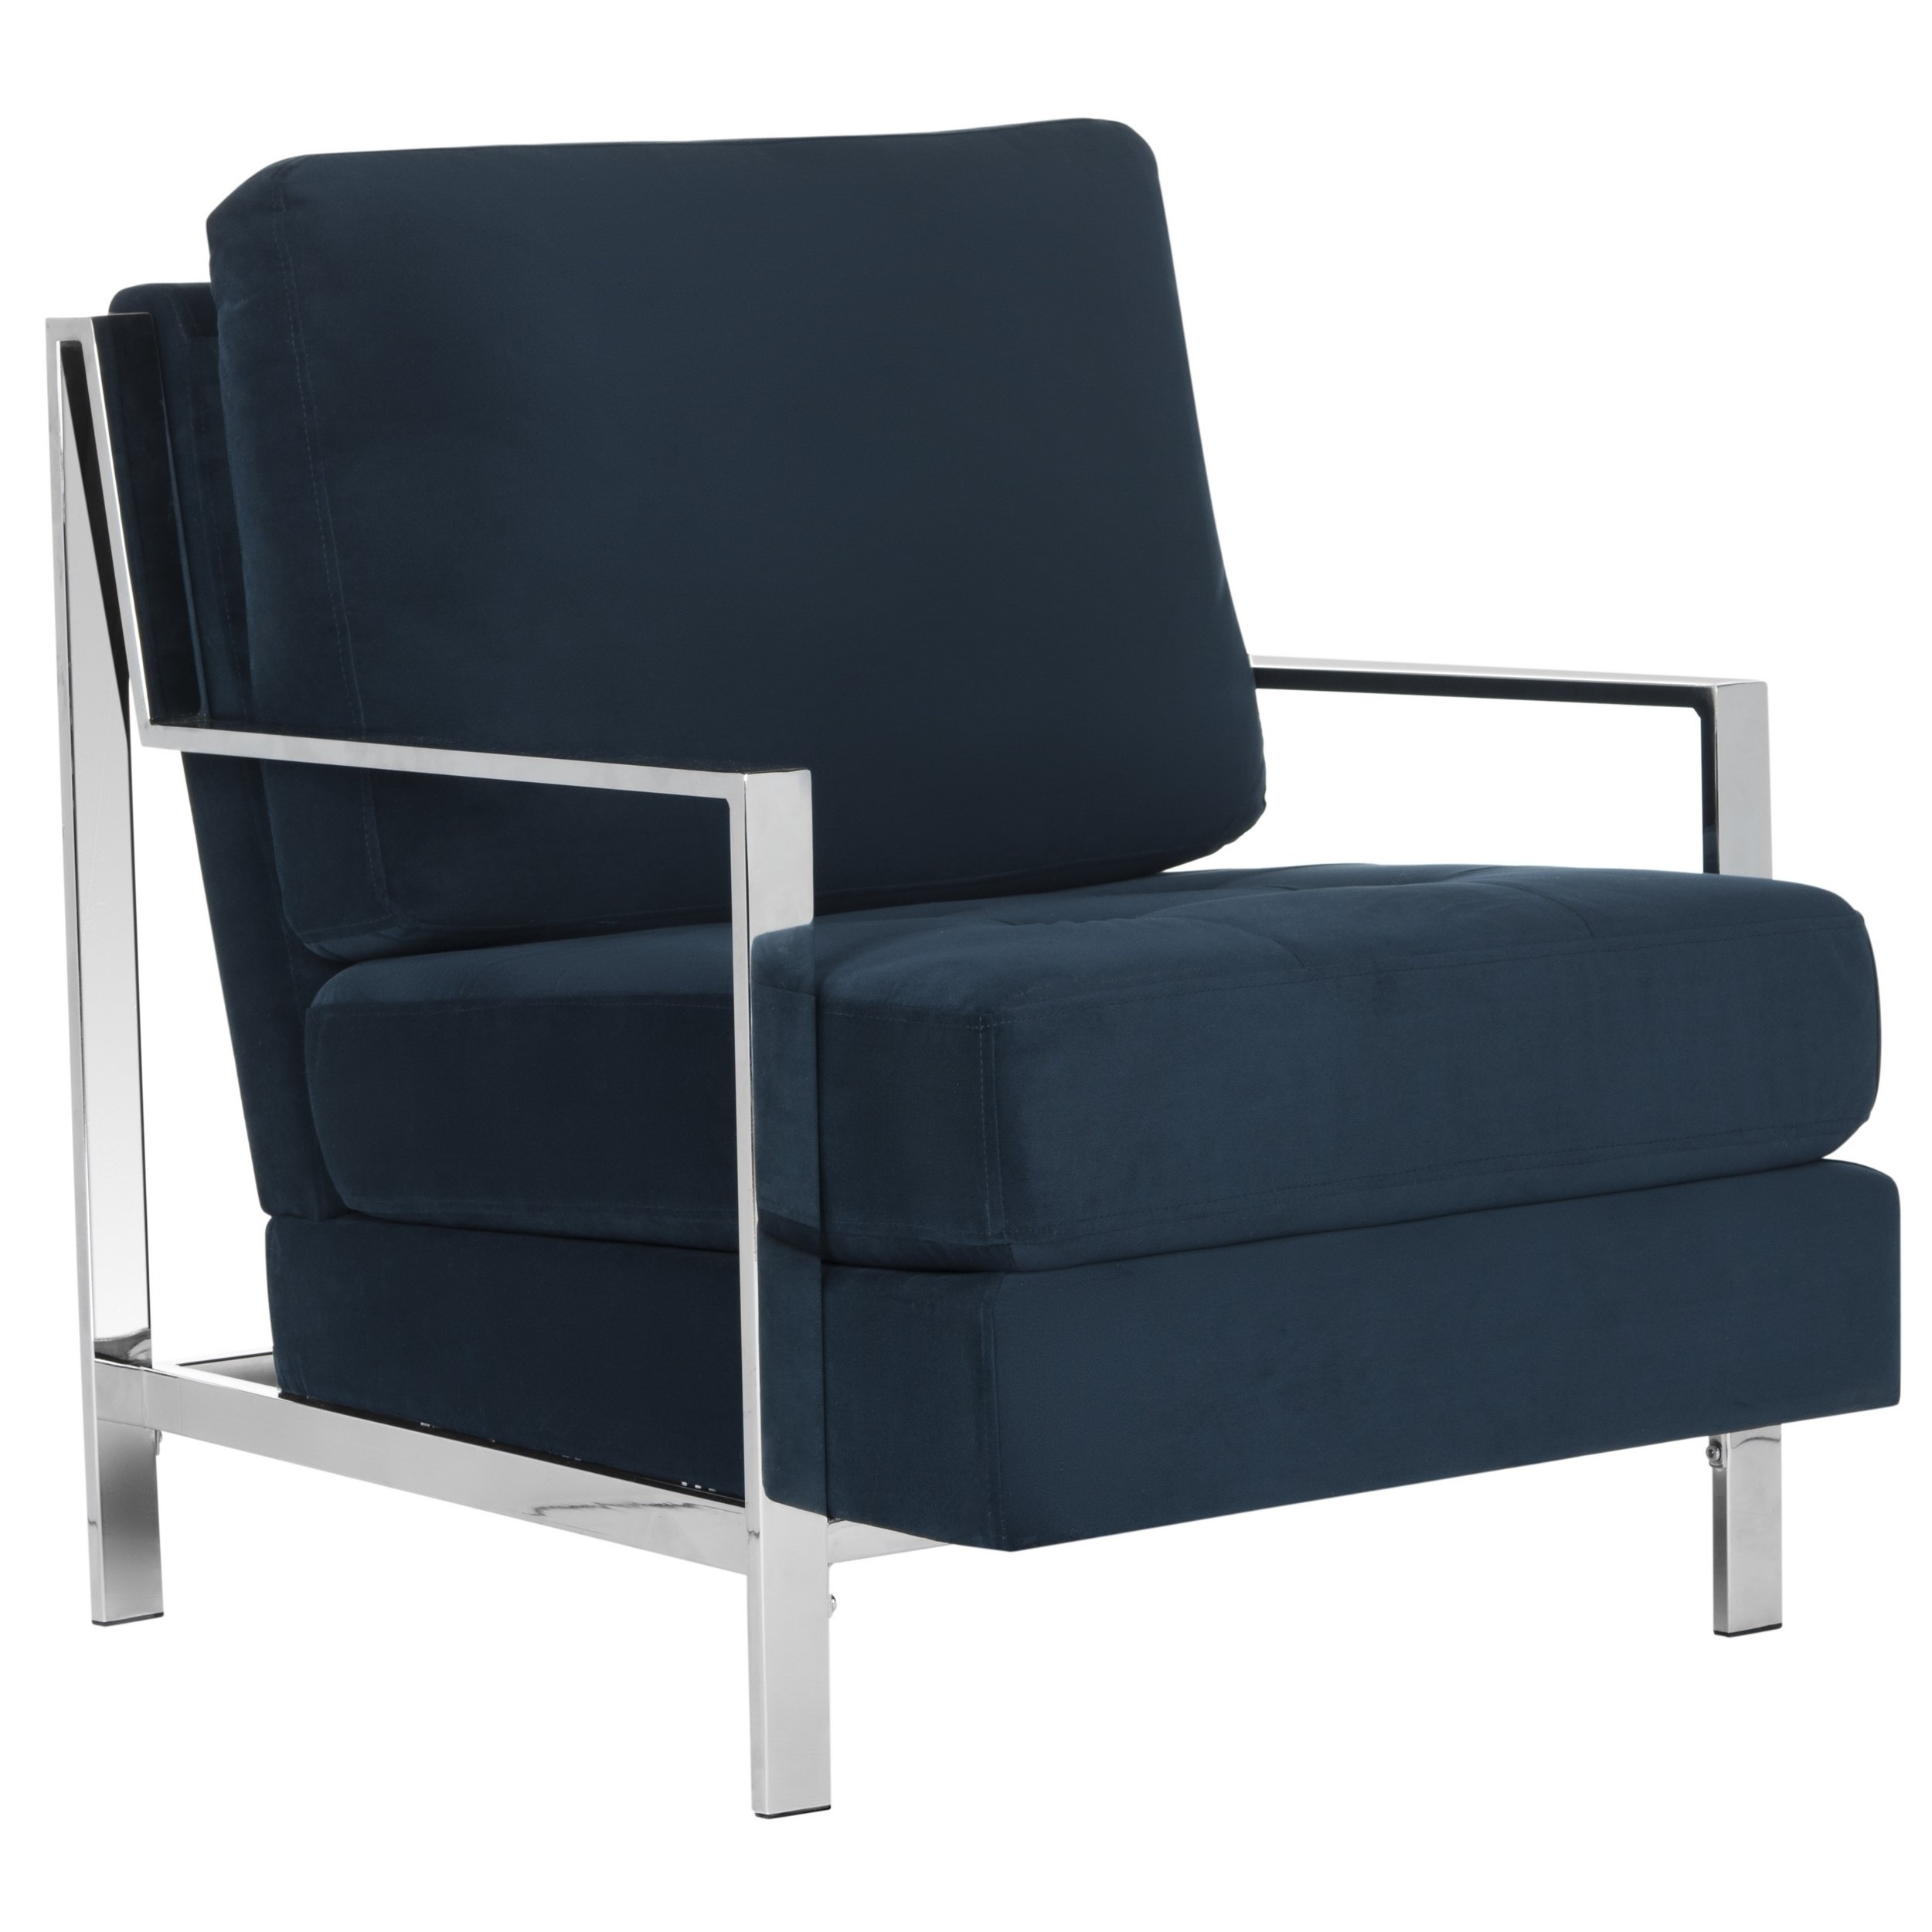 Shop Mid Century Modern Glam Velvet Navy Blue Club Chair – Free For Most Up To Date Walden Upholstered Arm Chairs (View 7 of 20)